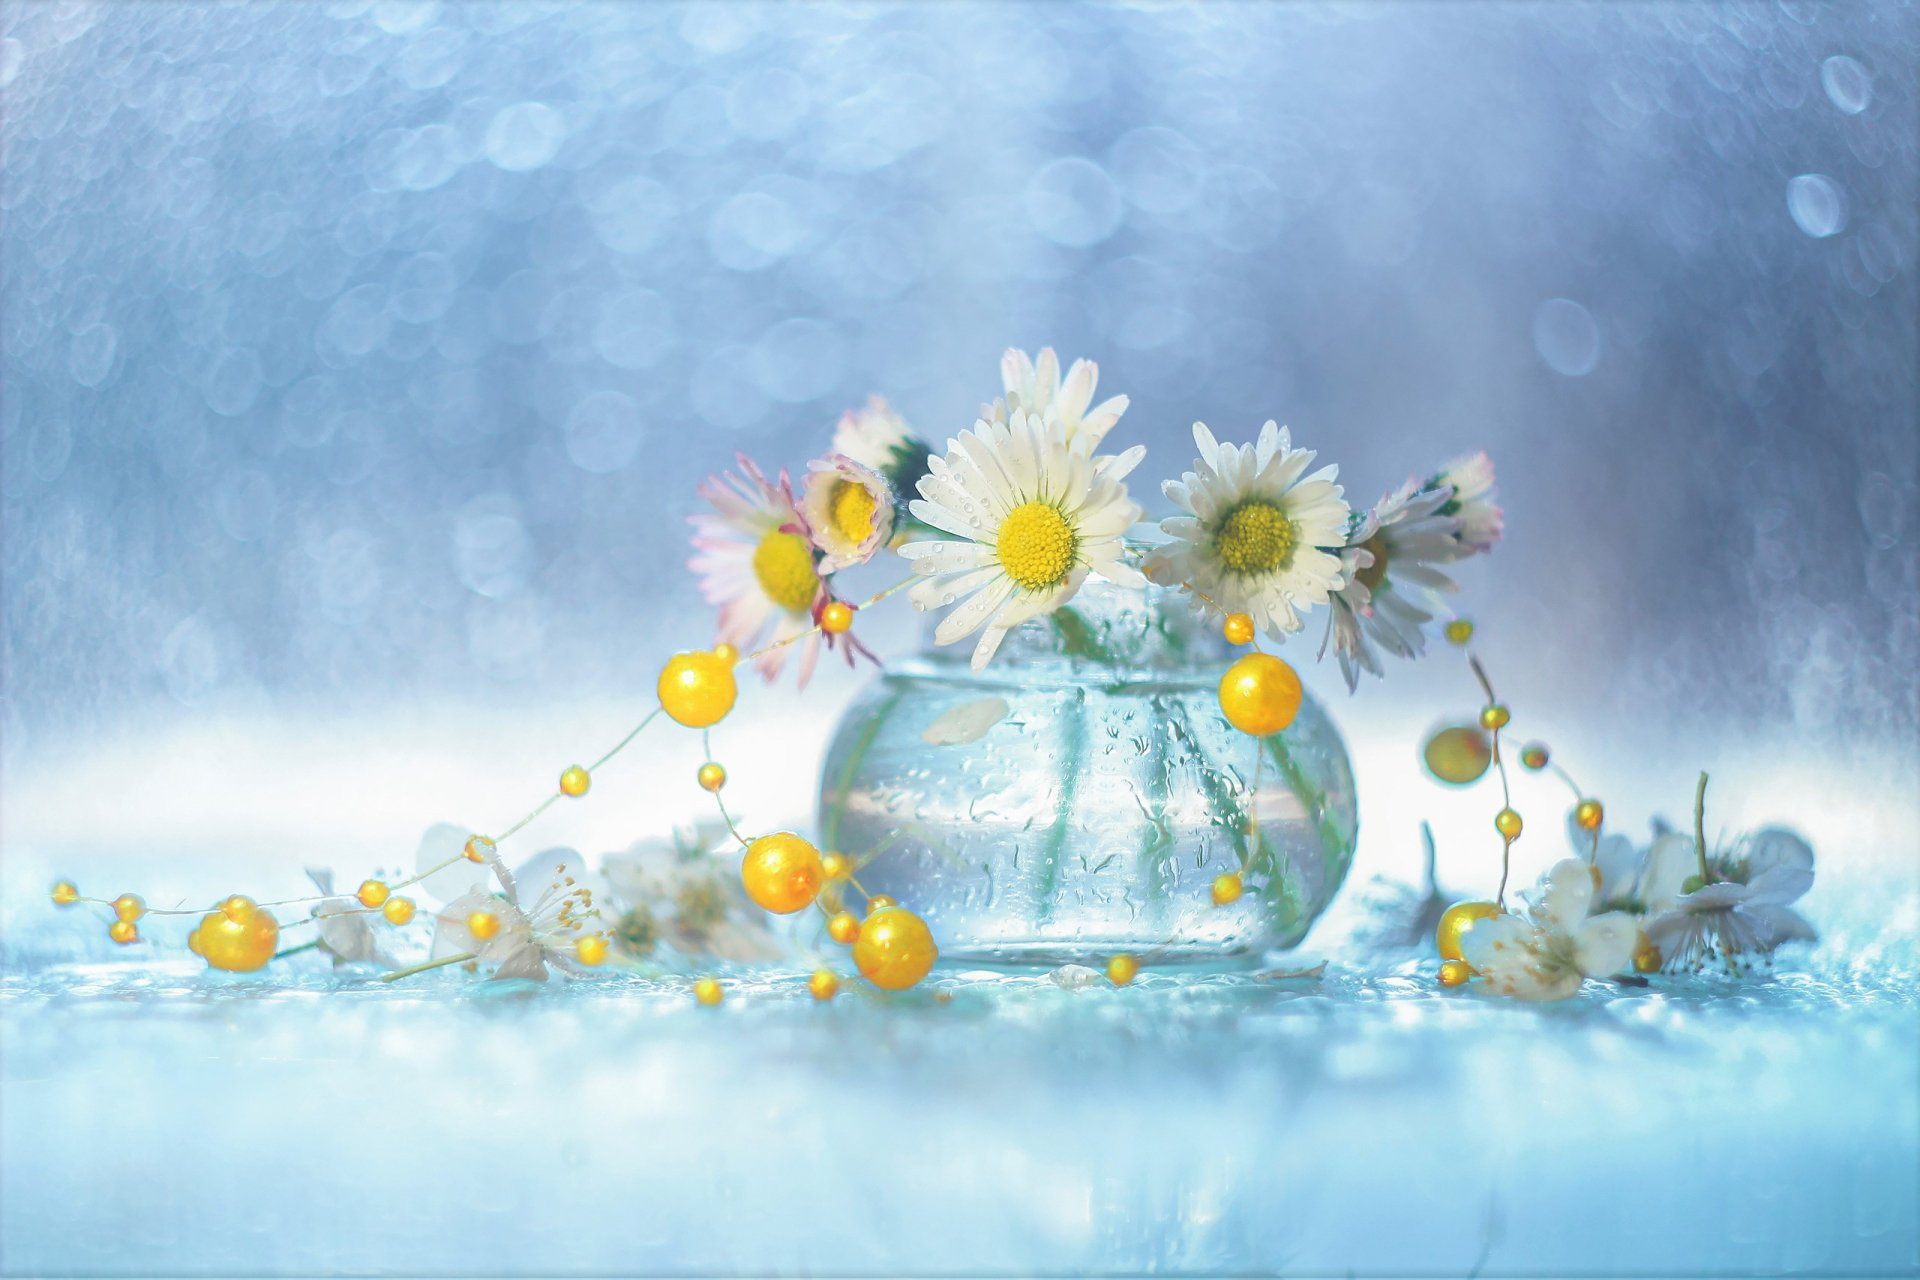 Wallpapers ID:858574